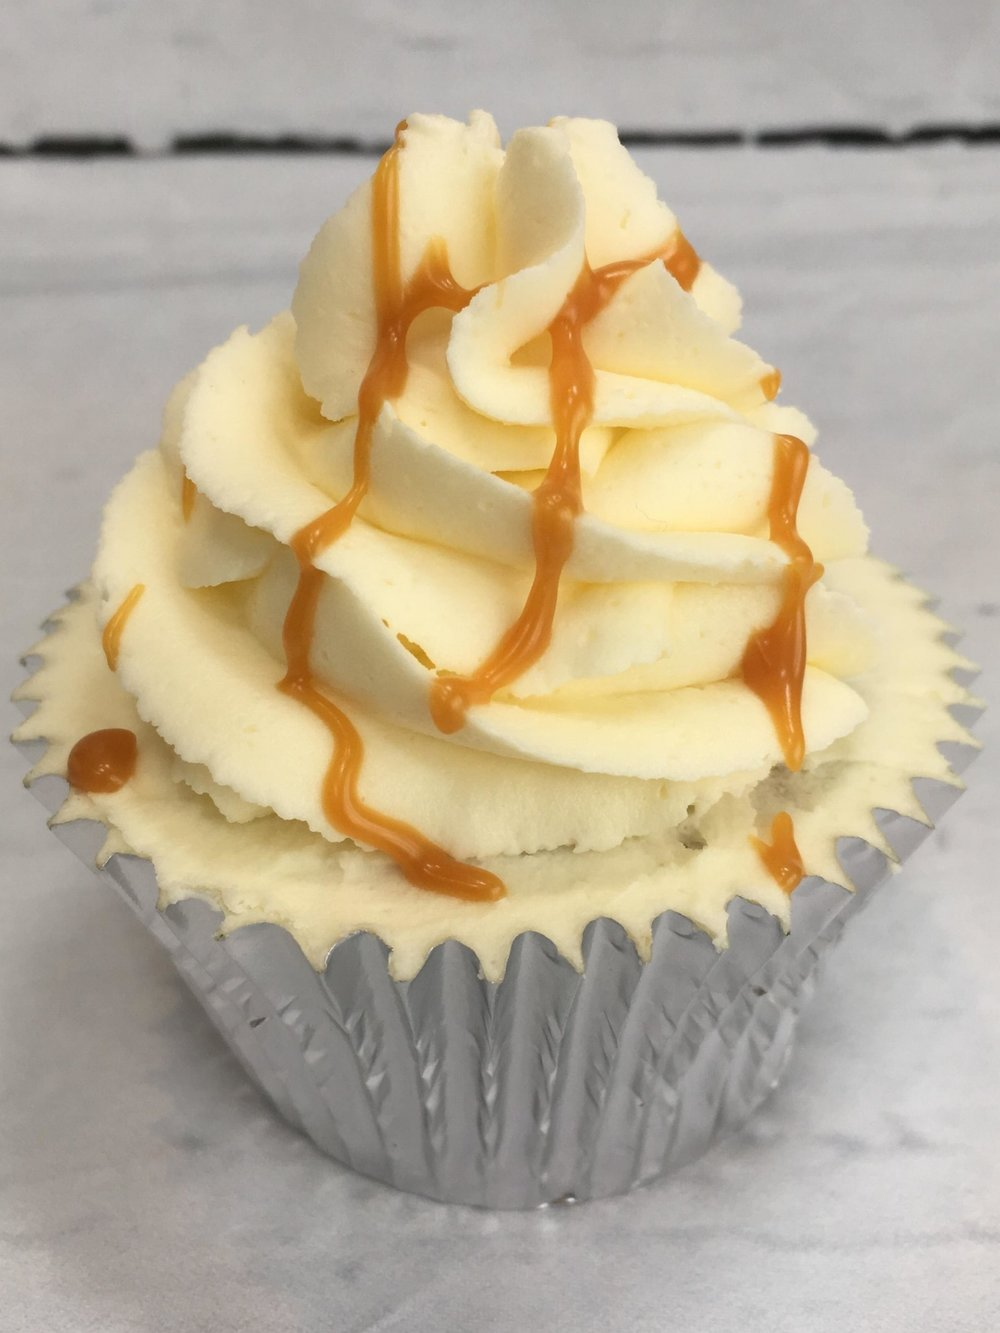 Salted Caramel - A caramel cupcake filled with salted caramel sauce and topped with decadent salted caramel buttercream